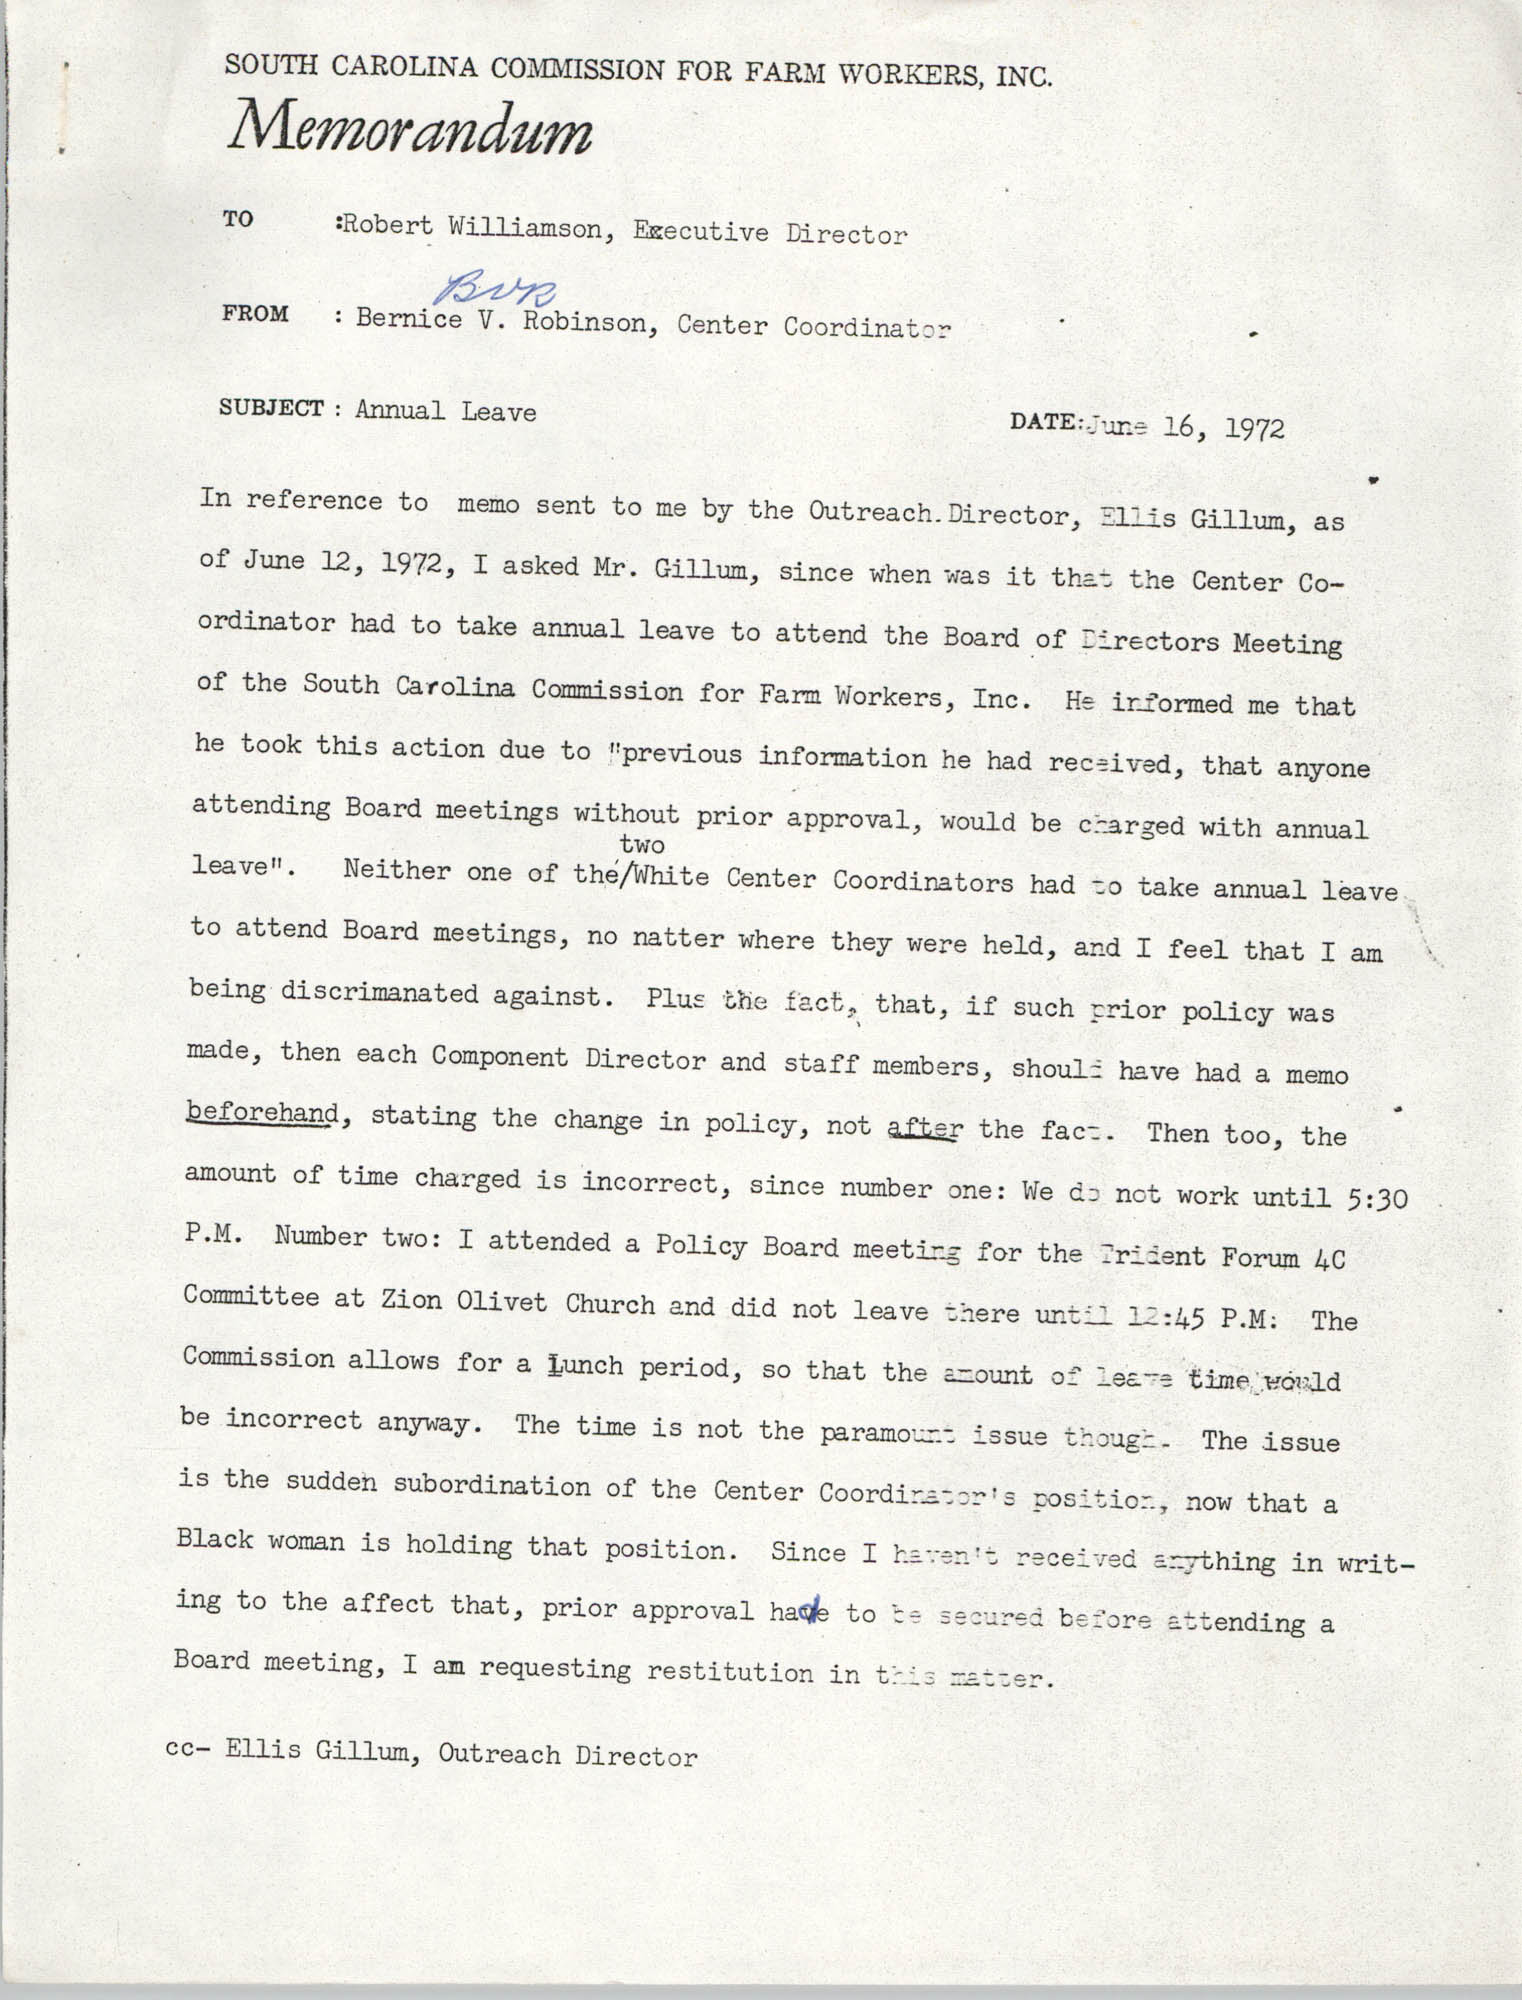 Memorandum from Bernice Robinson to Robert Williamson, June 16, 1971